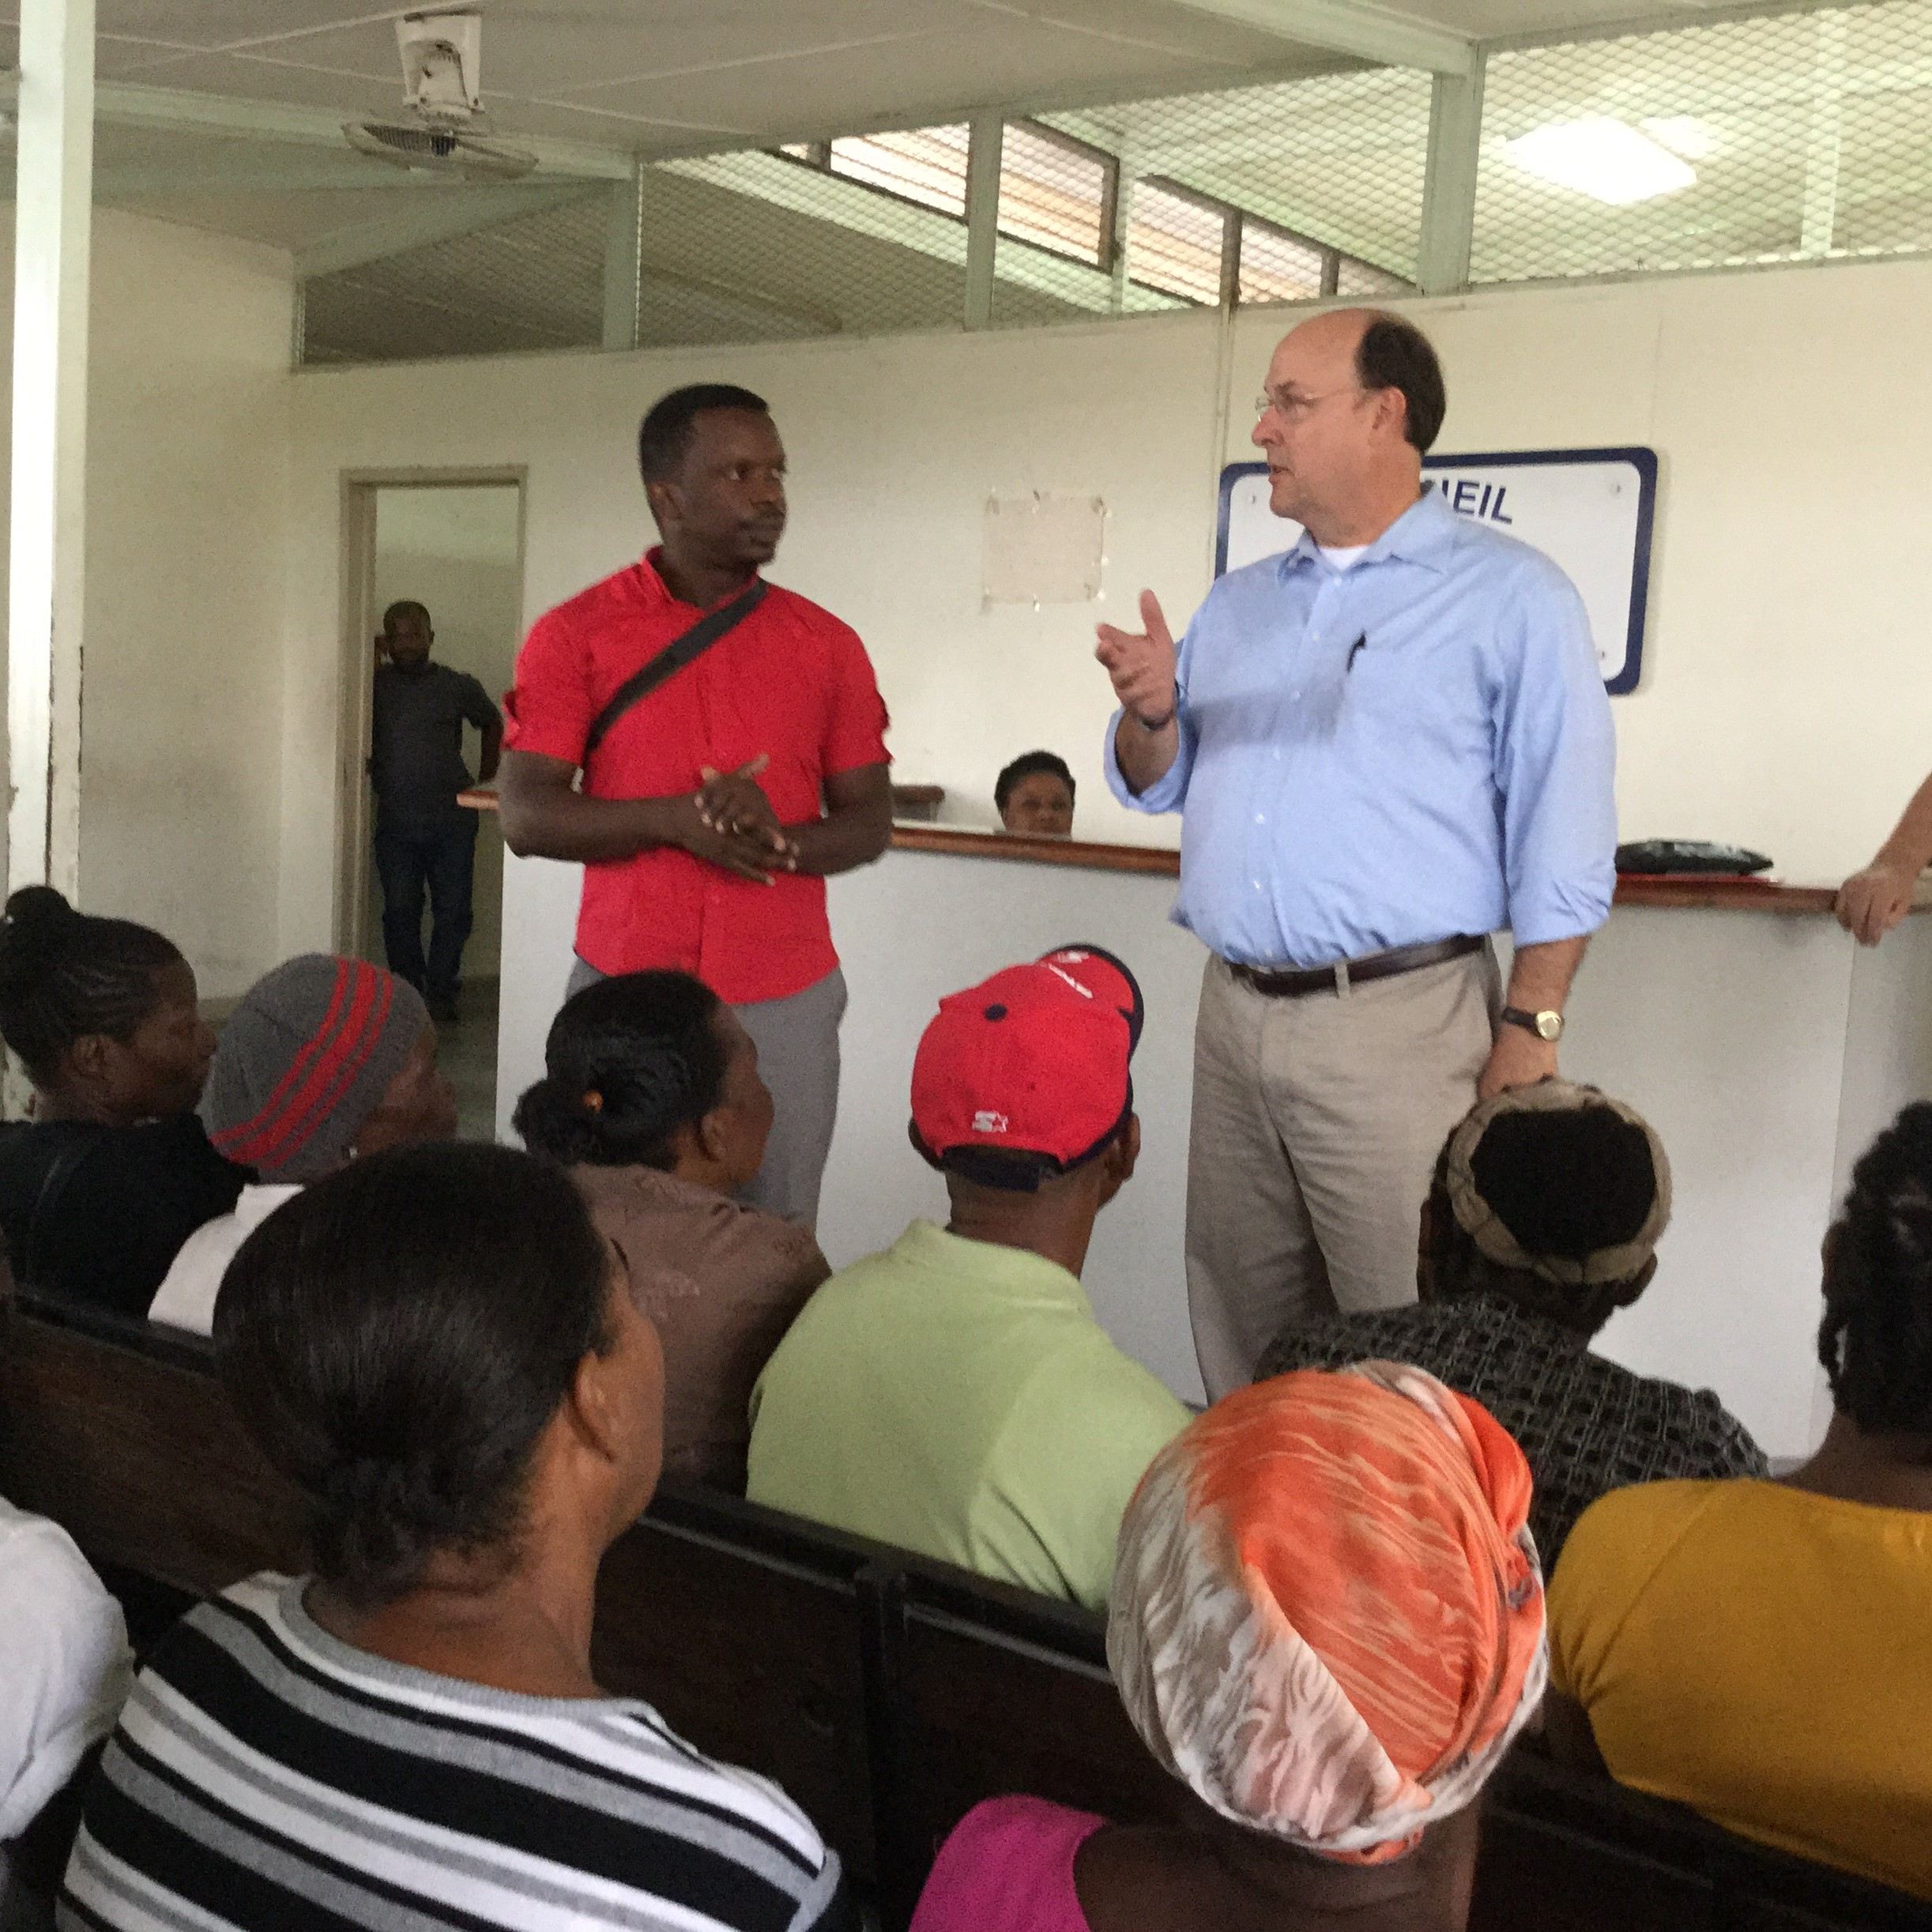 Dr. Tommy Brumett, with the help of a translator, shared God's word with people gathered to receive medical services at Grace Children's Hospital. The hospital serves 180,000 people every year and leads the fight against tuberculous and HIV in Port-au-Prince and 149 surrounding communities.